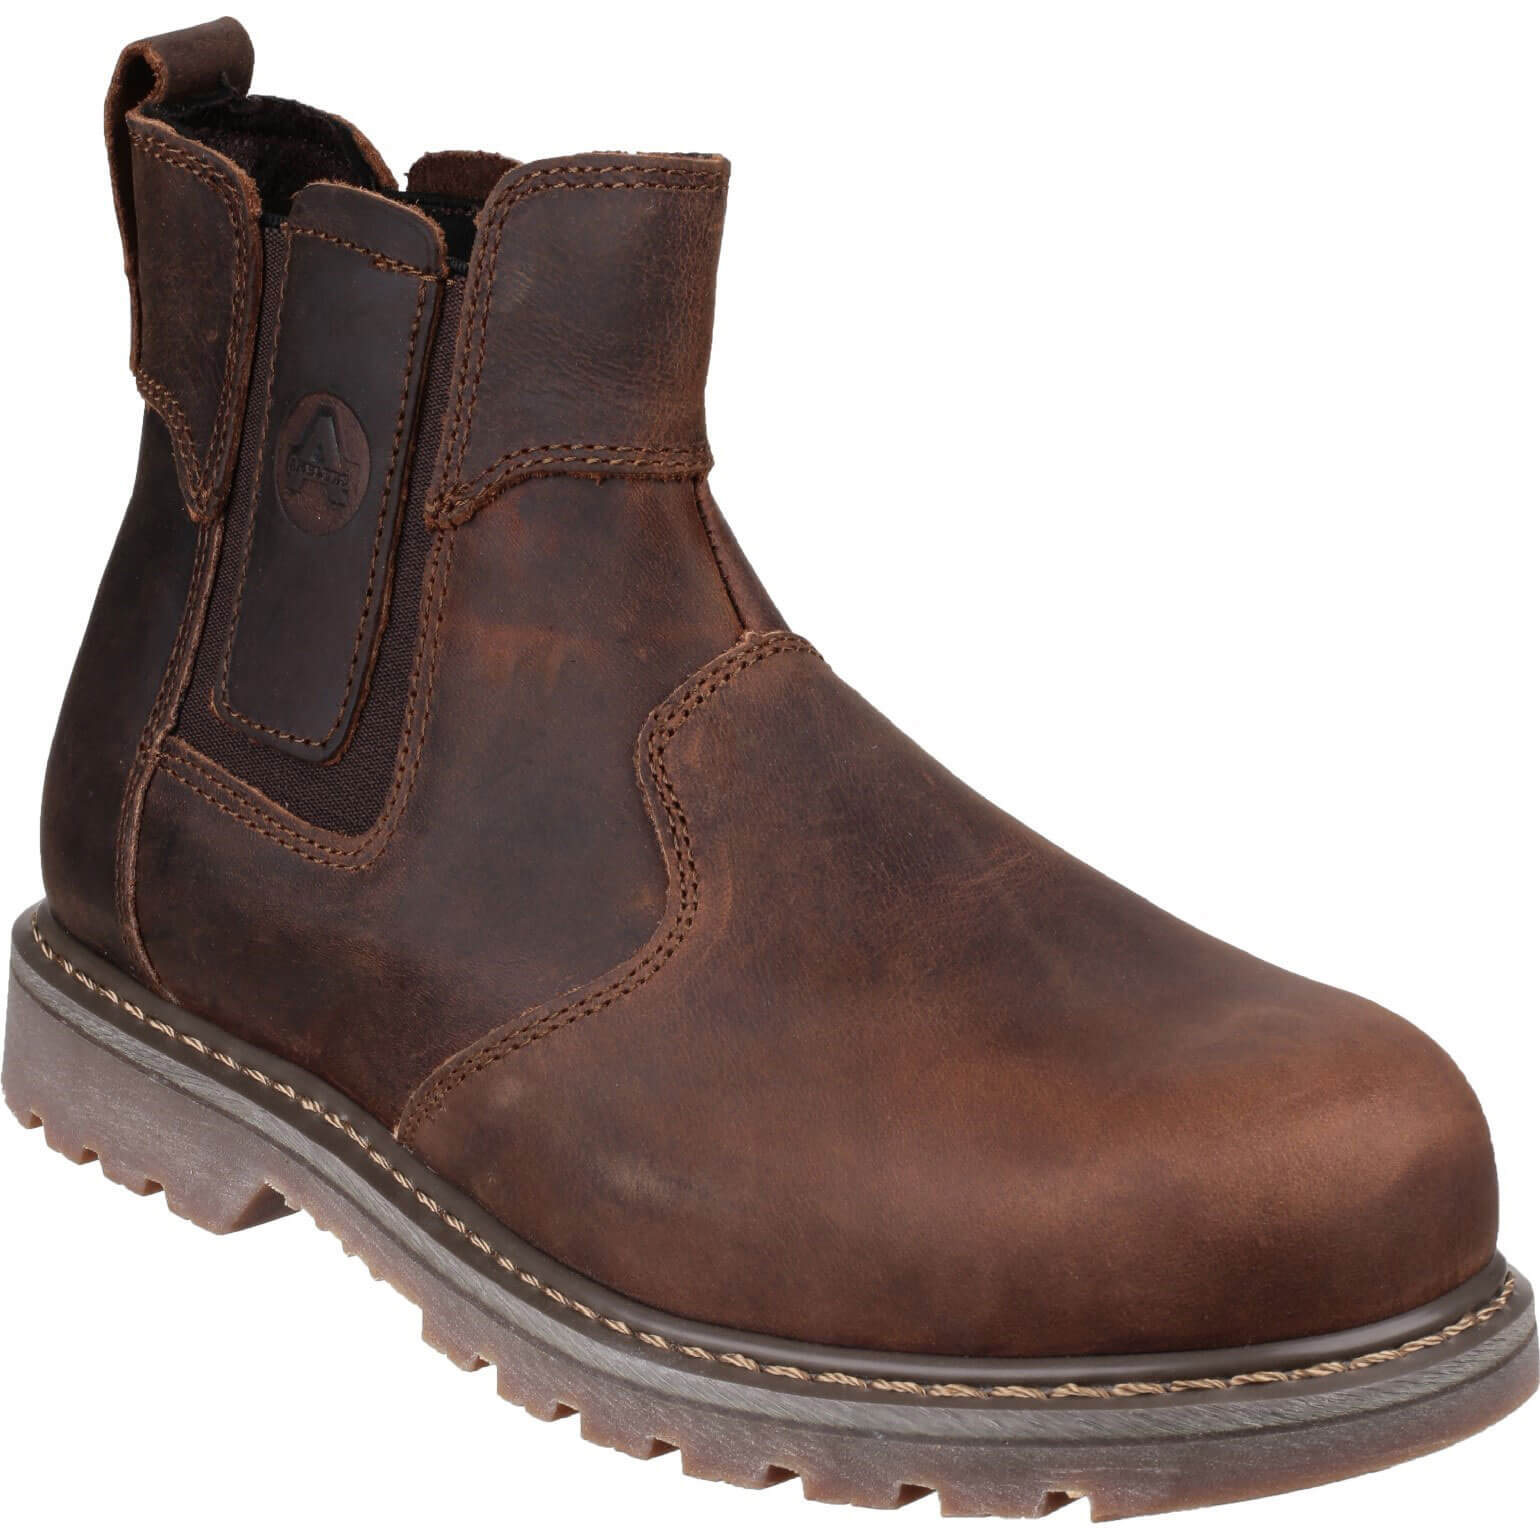 CHEAP Amblers Safety Pull On Dealer Safety Boots Brown Size 6.5 – Men's Footwear